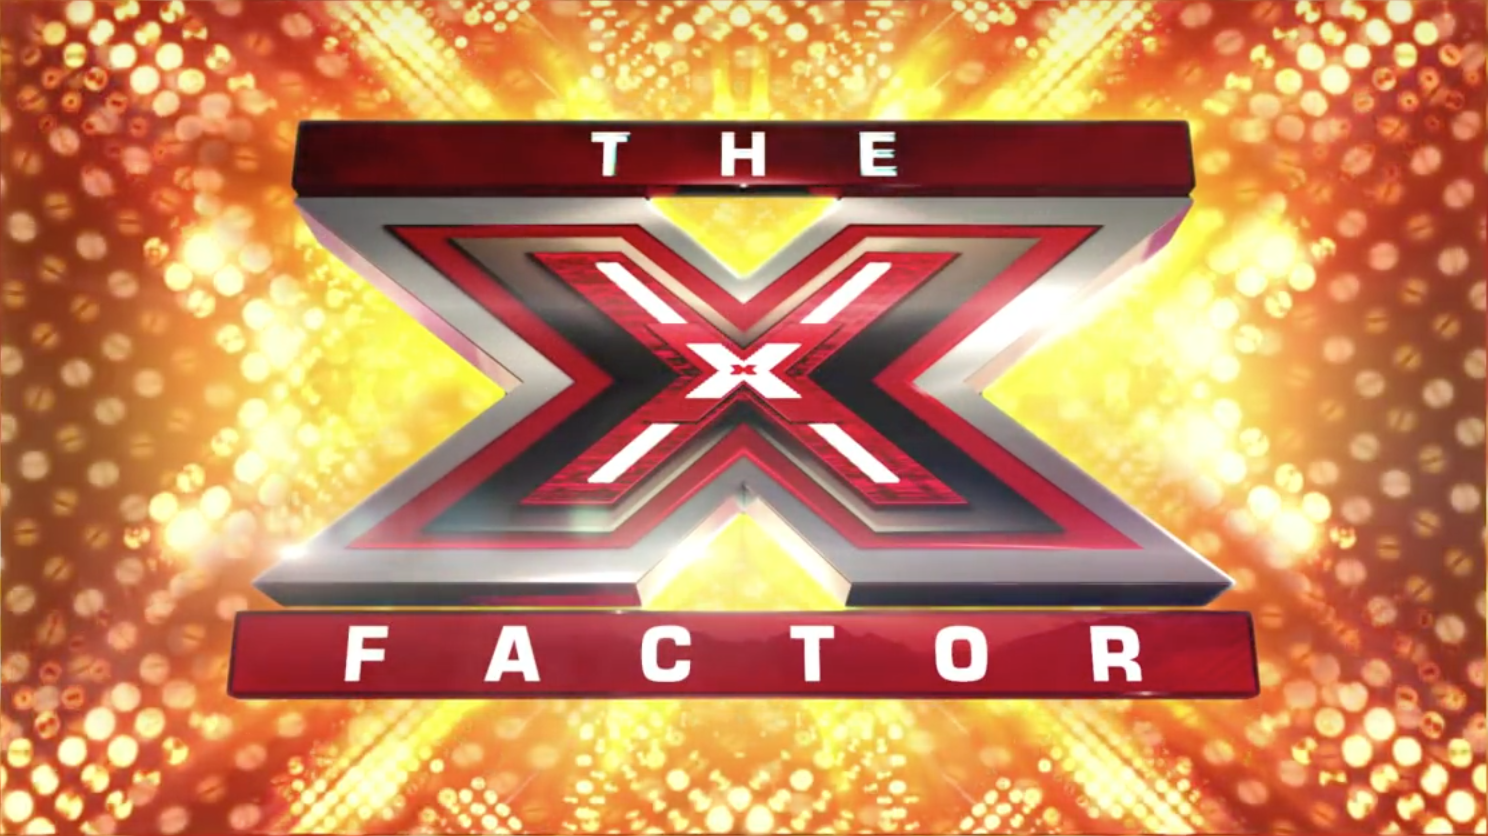 factor x wallpaper - photo #44